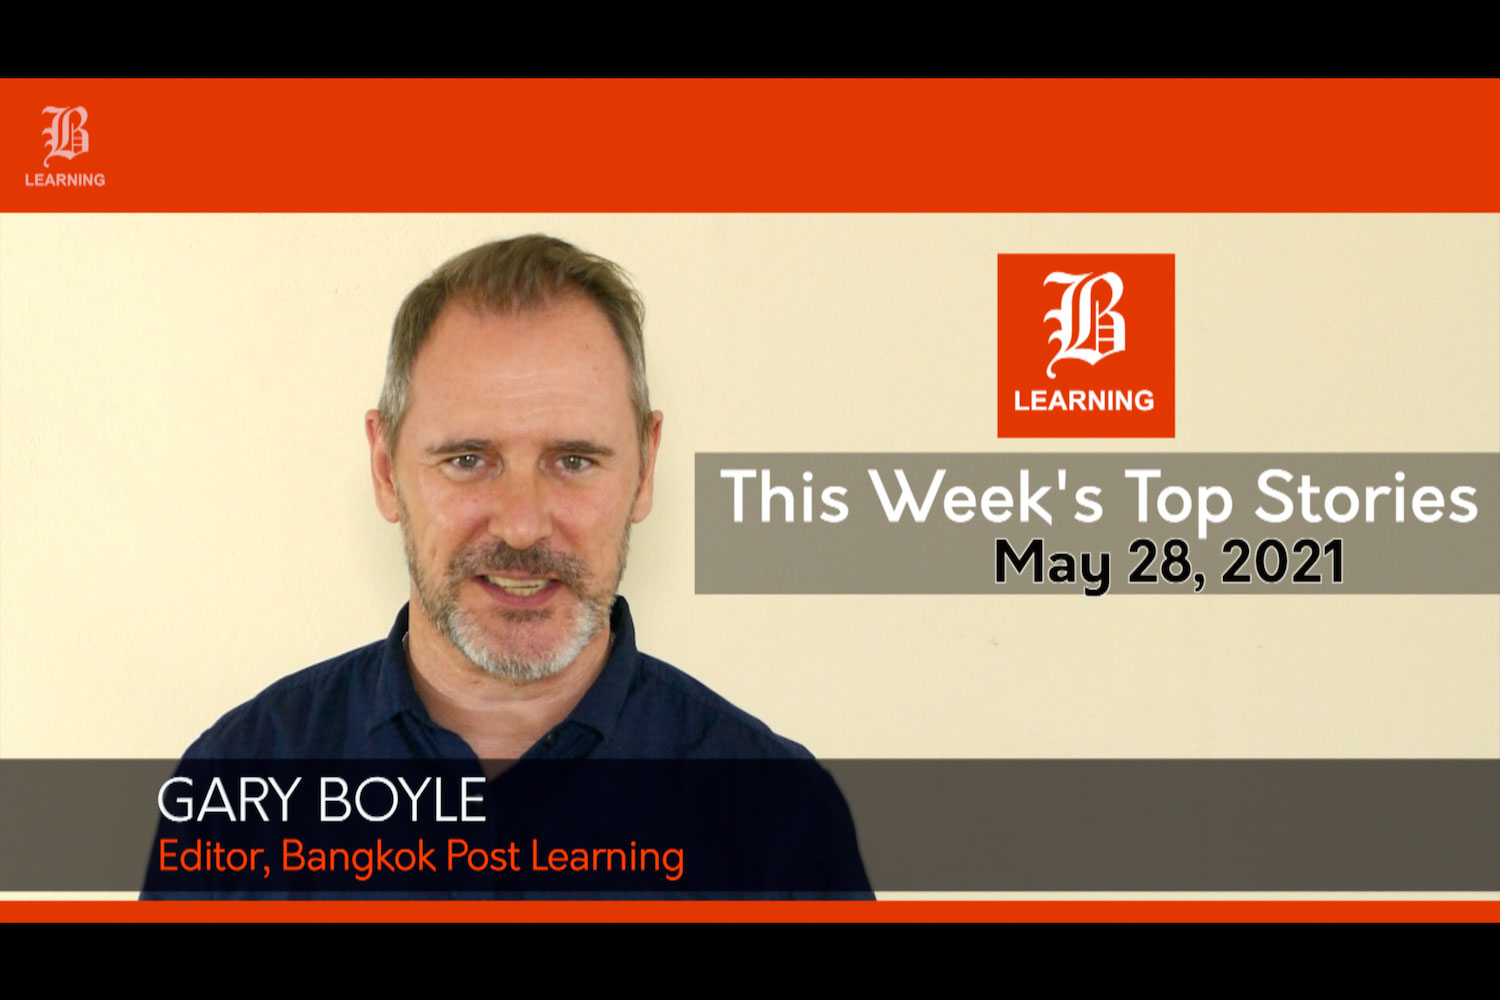 This week's top stories: May 28, 2021